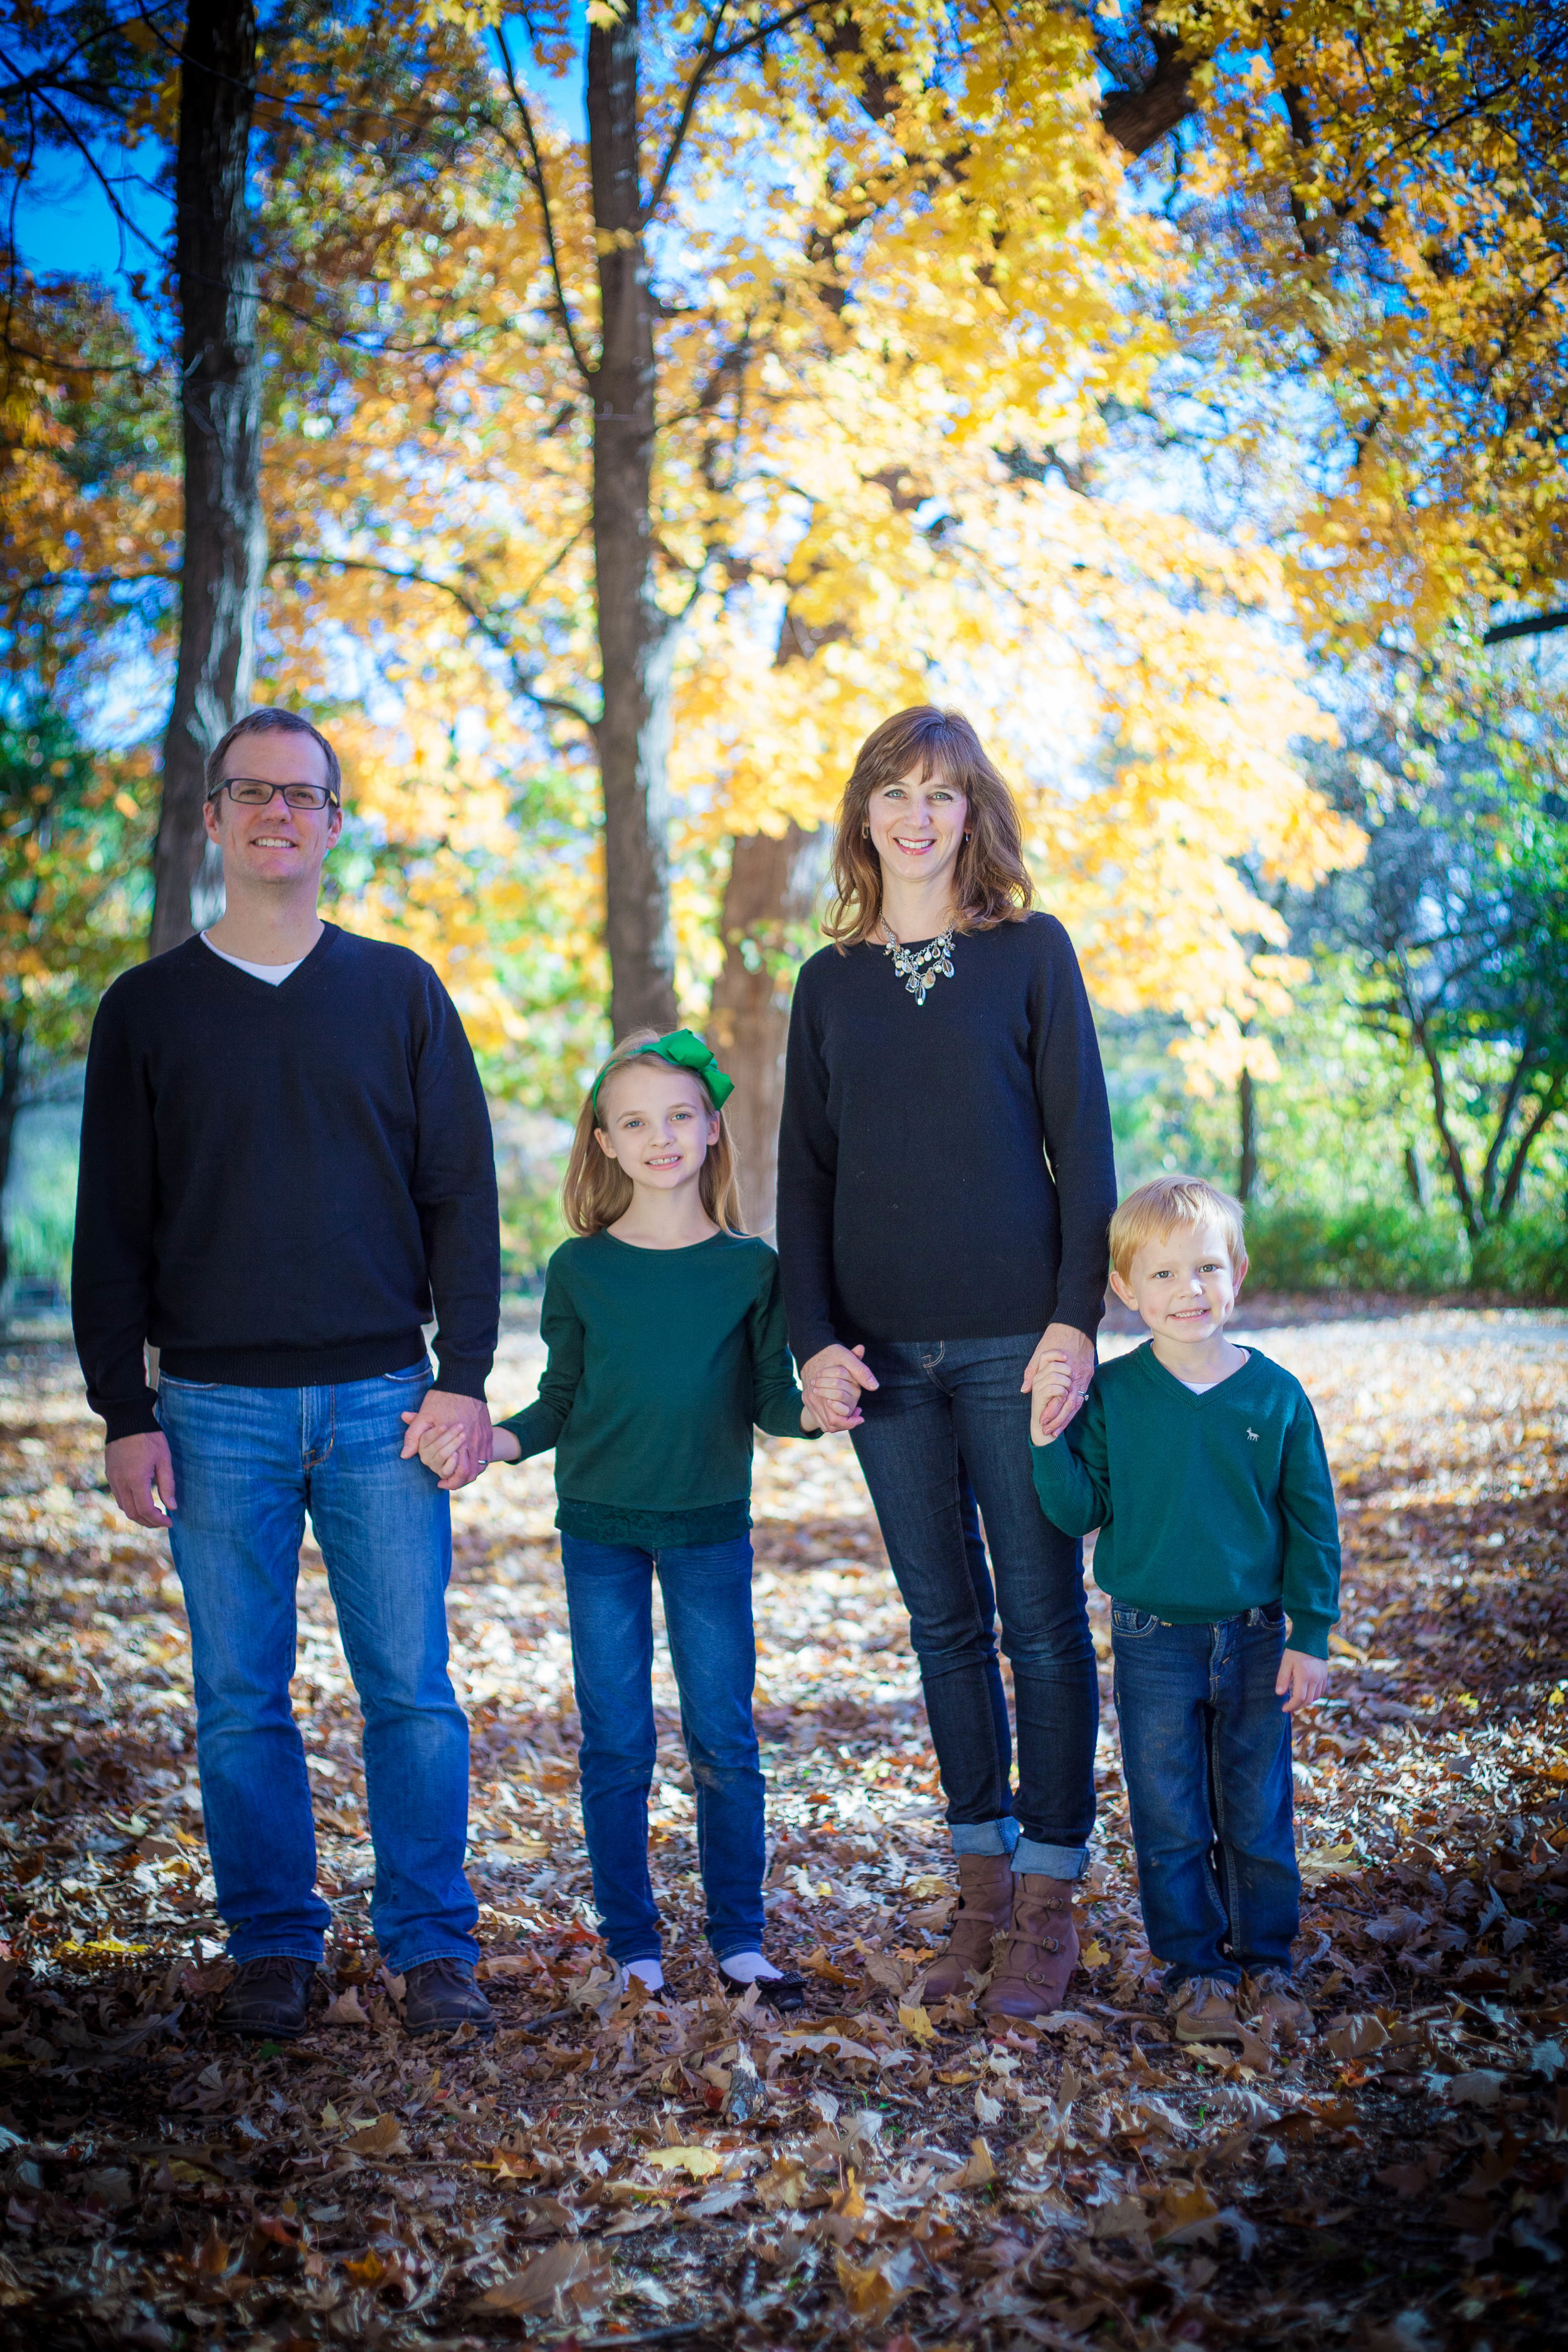 family photographer based in chicago